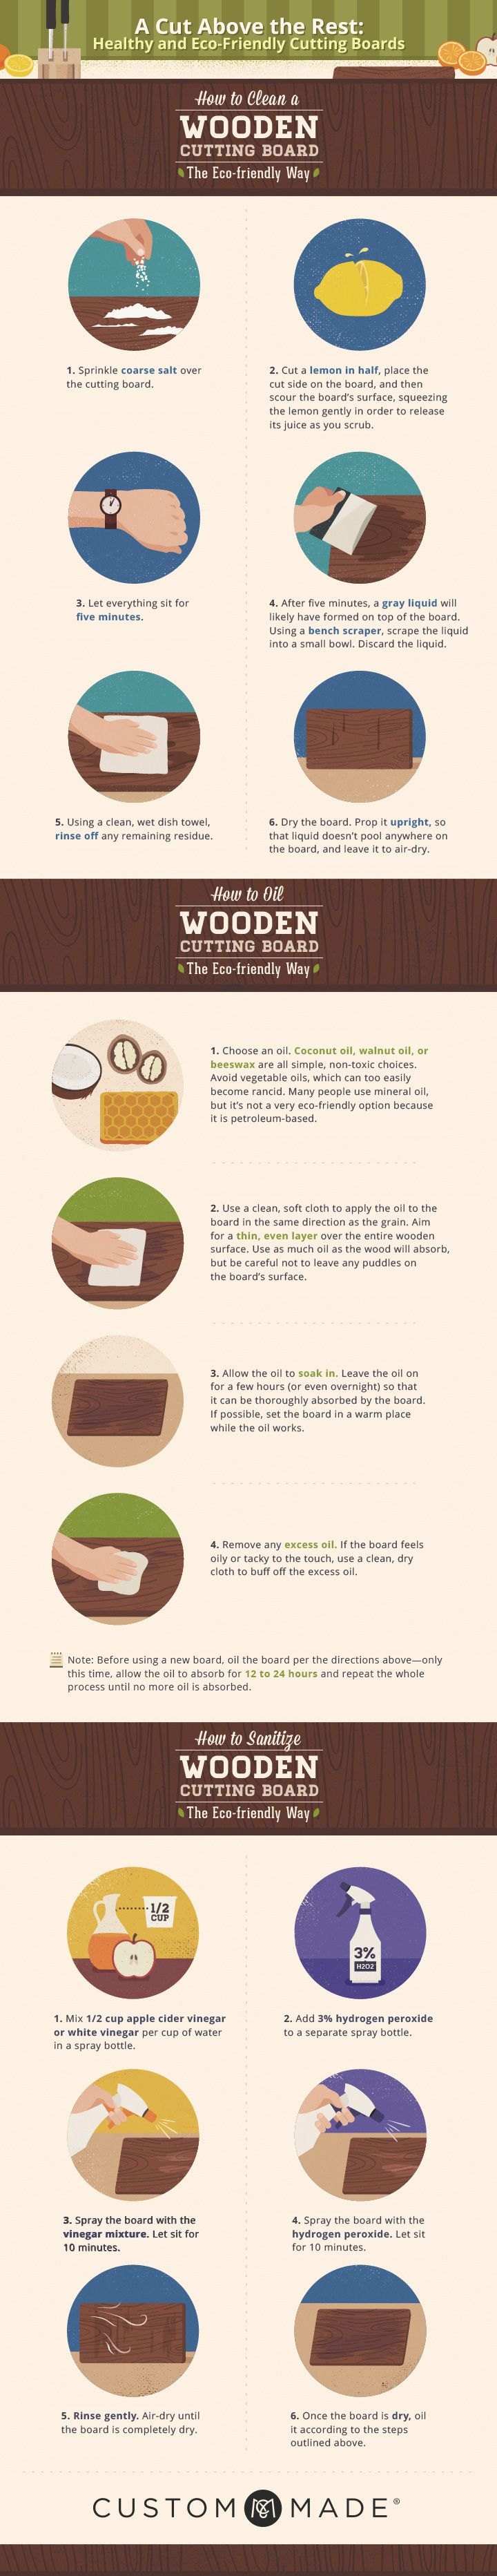 How to clean, oil and sanitize wooden cutting boards the eco-friendly way